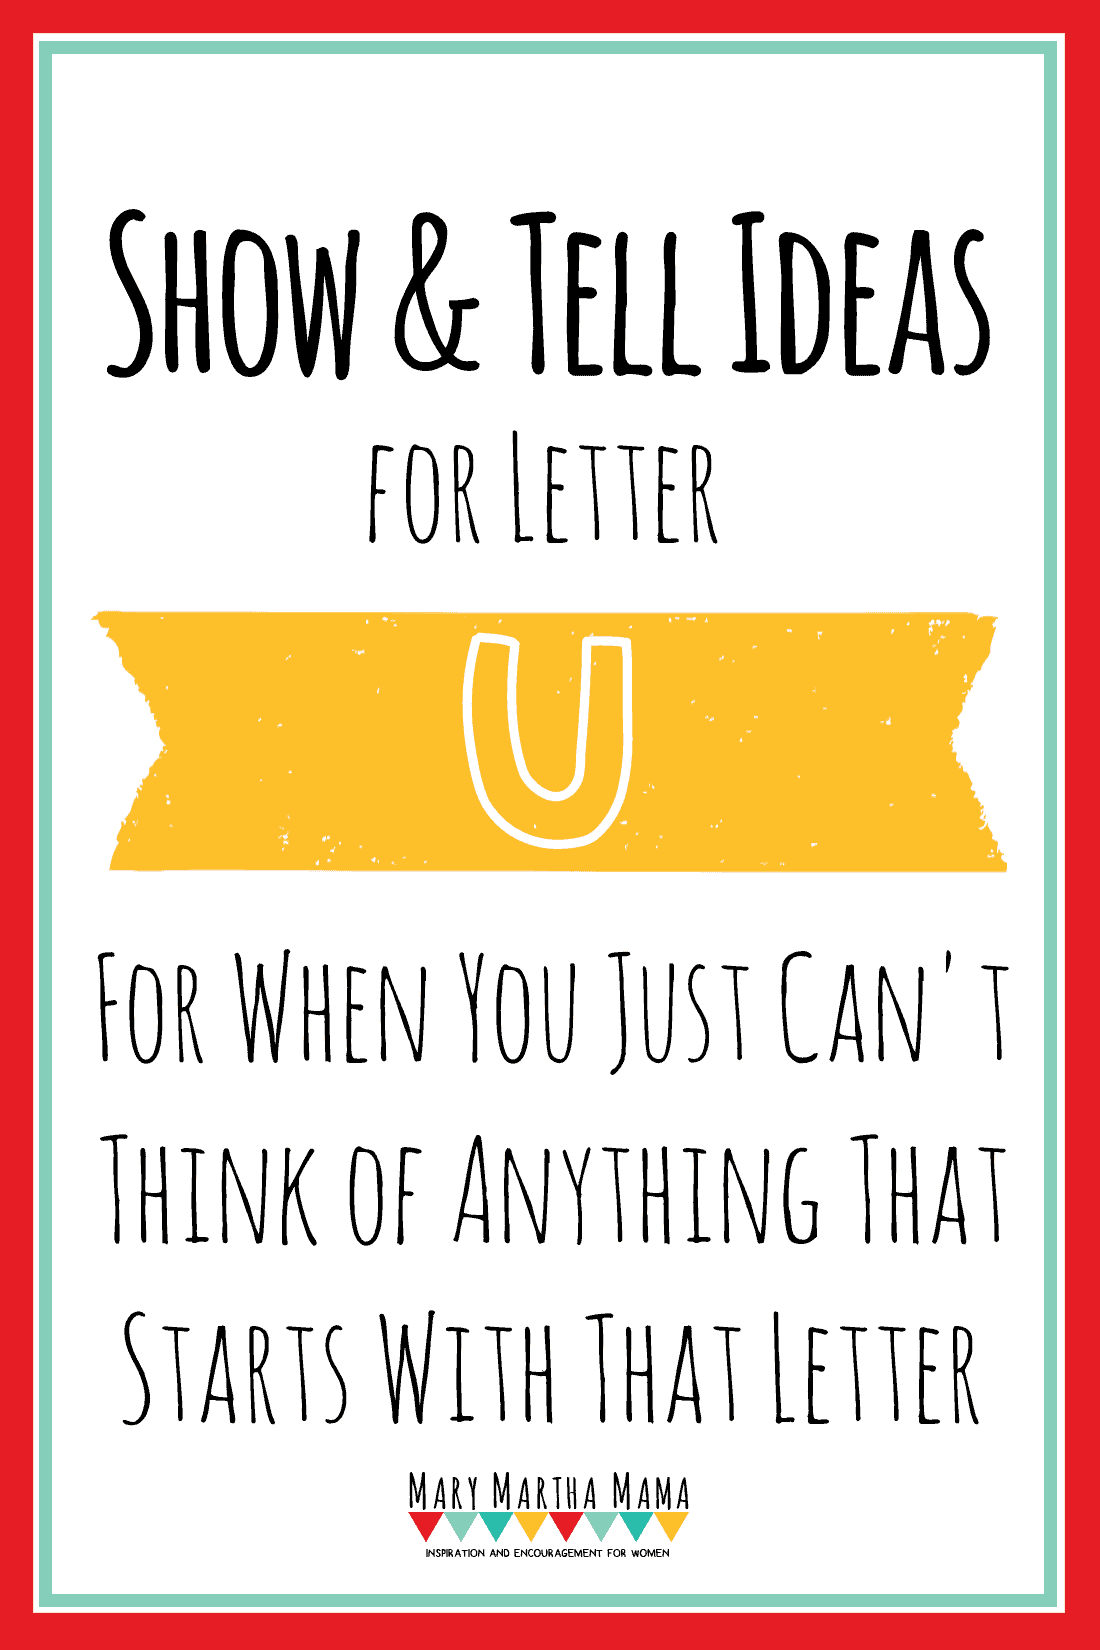 show and tell letter u show and tell letter u 20 ideas martha 24844 | show and tell letter u